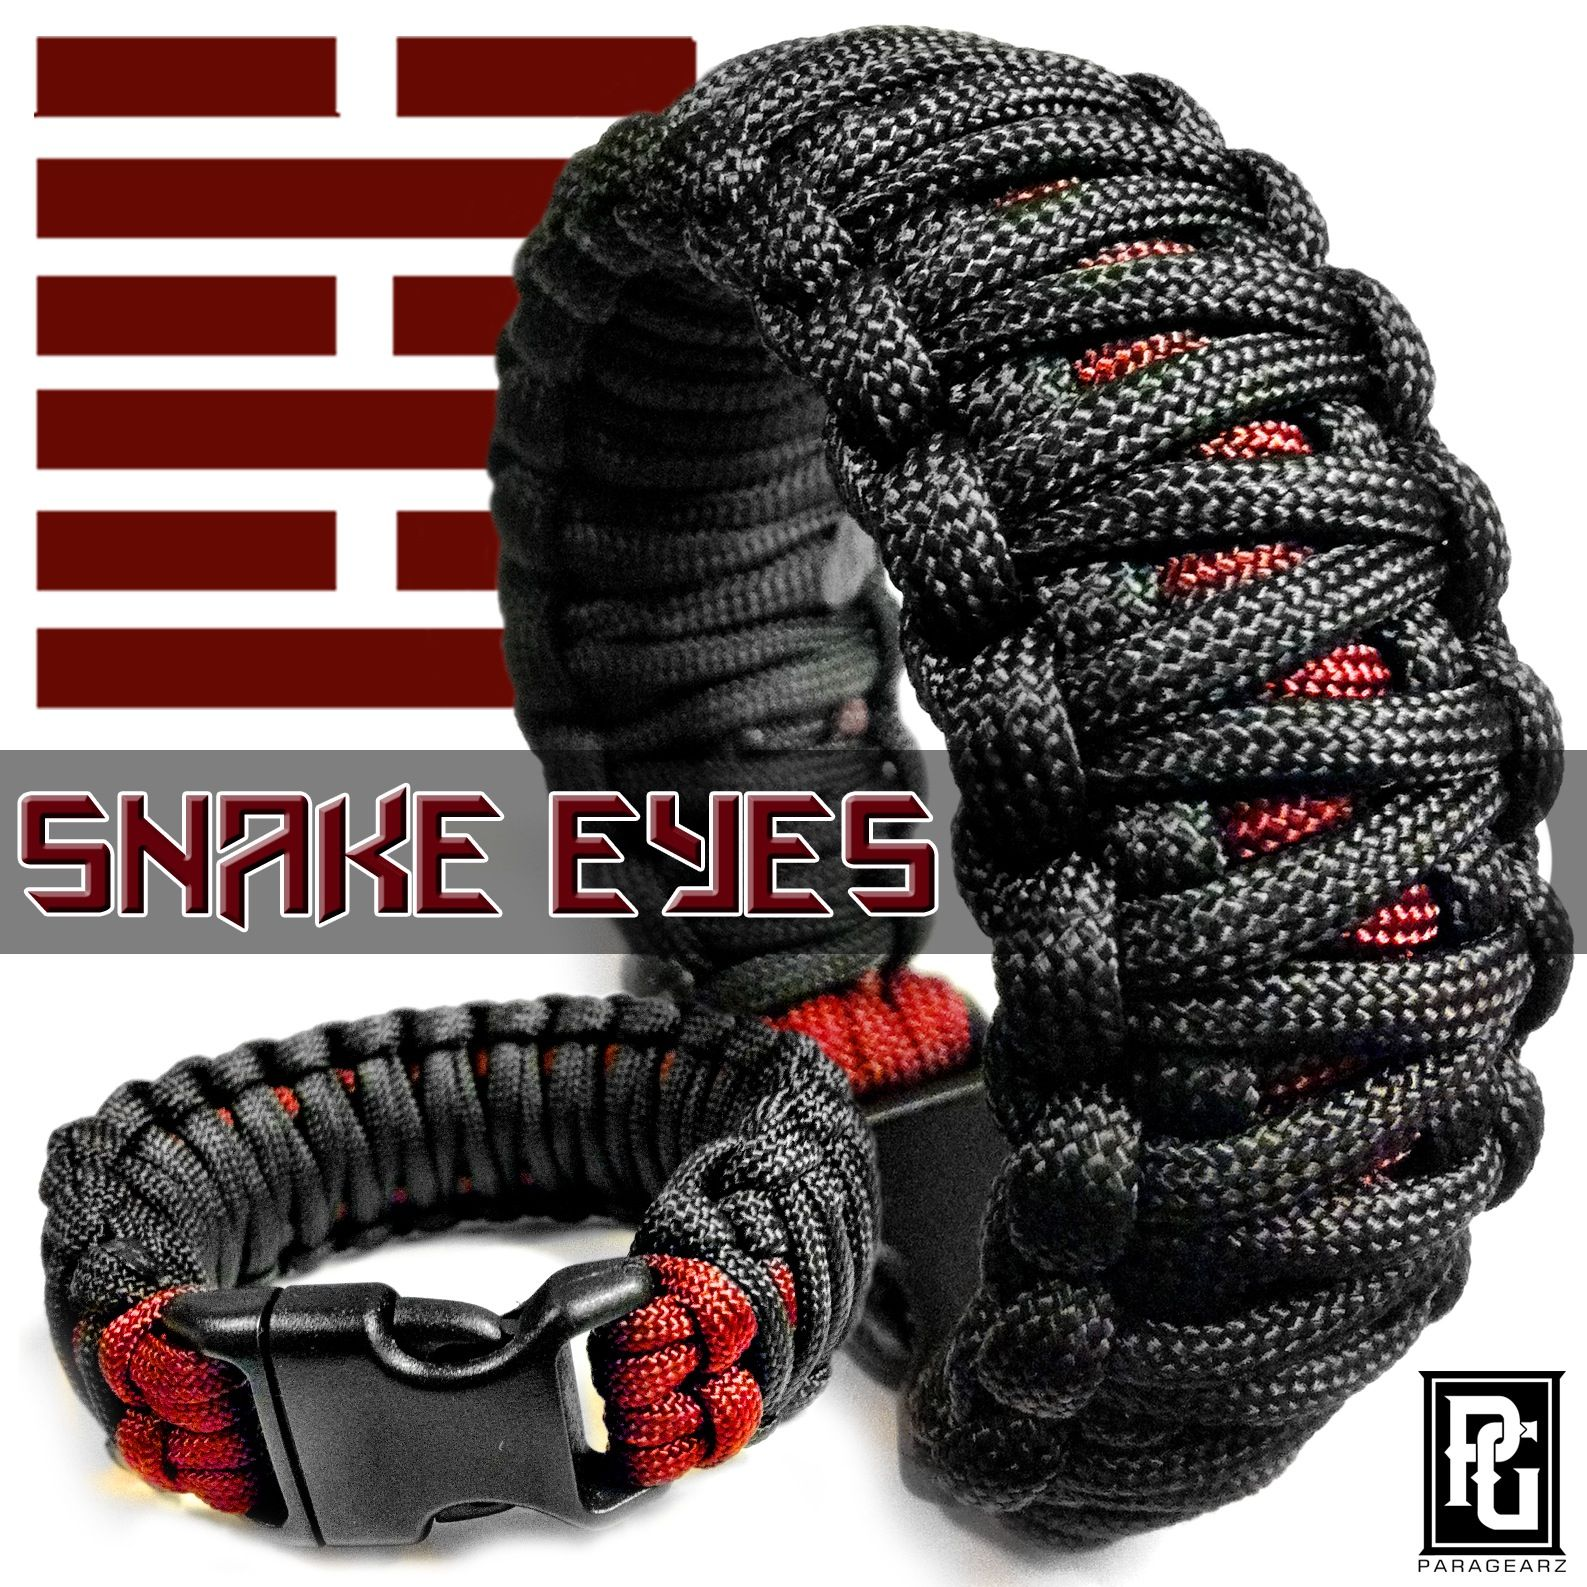 Snake Eyes Themed Paracord Bracelet Available At Www Paragearz